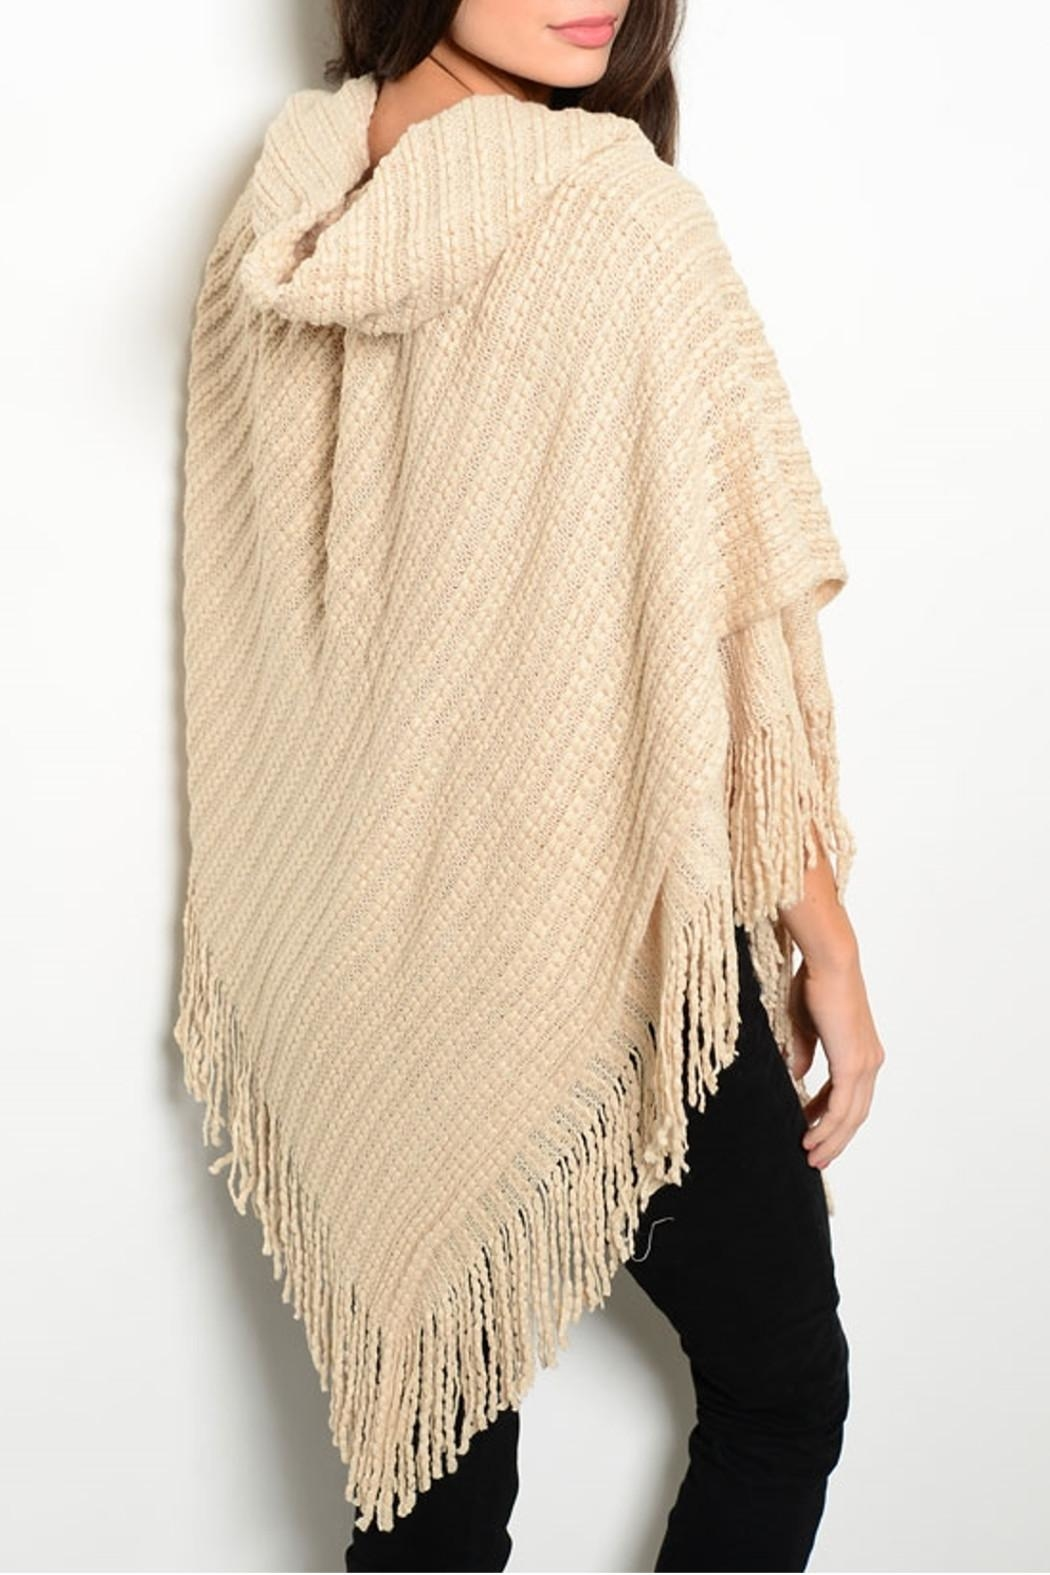 MS Accessories Fringes Beige Poncho - Front Full Image